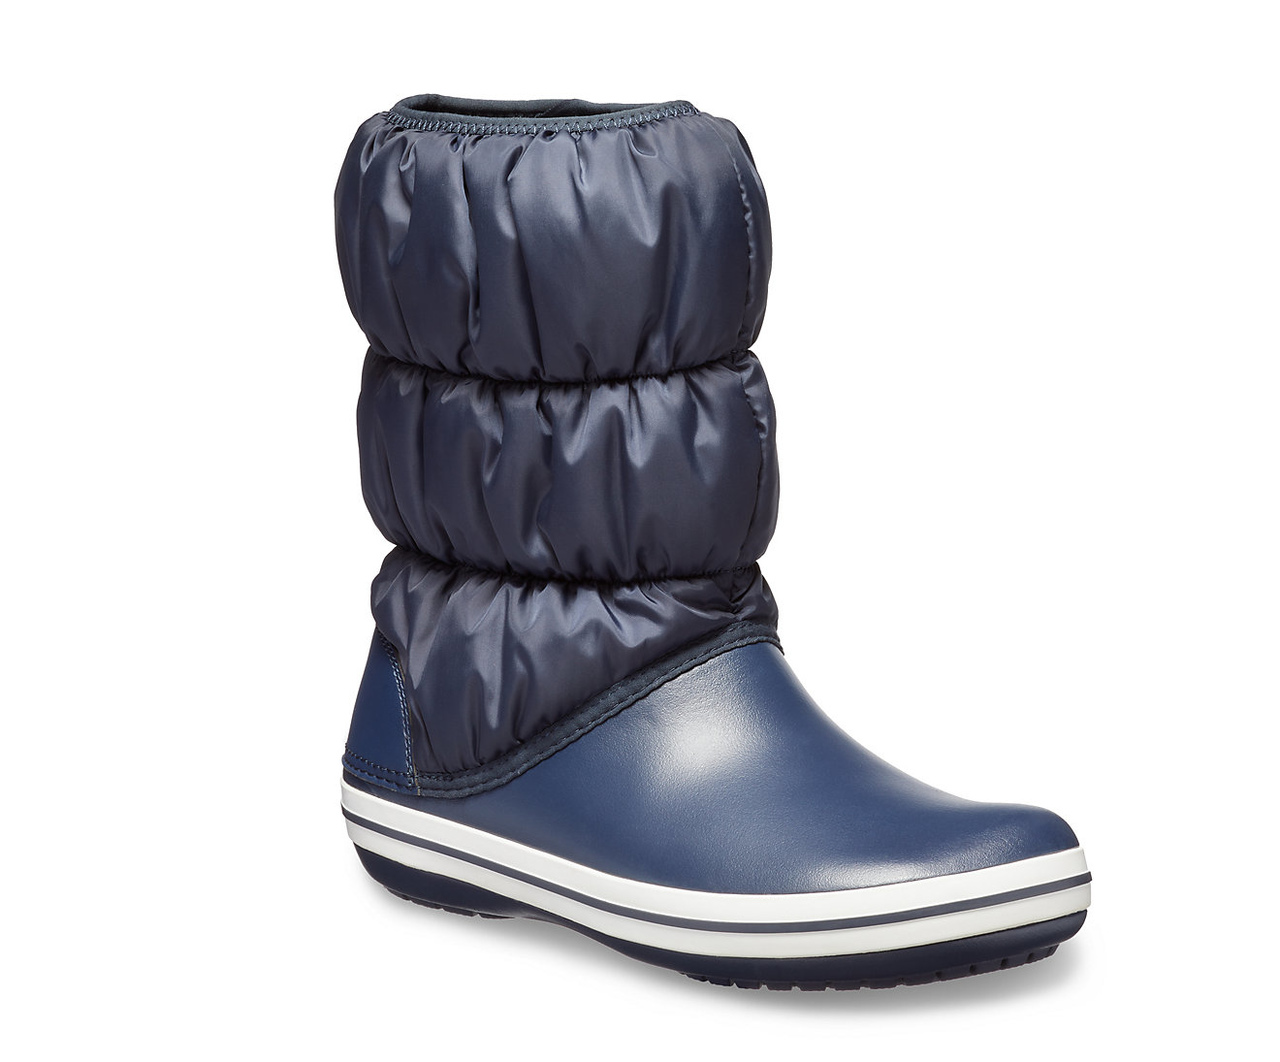 Crocs modré sněhule Winter Puff Boot Navy